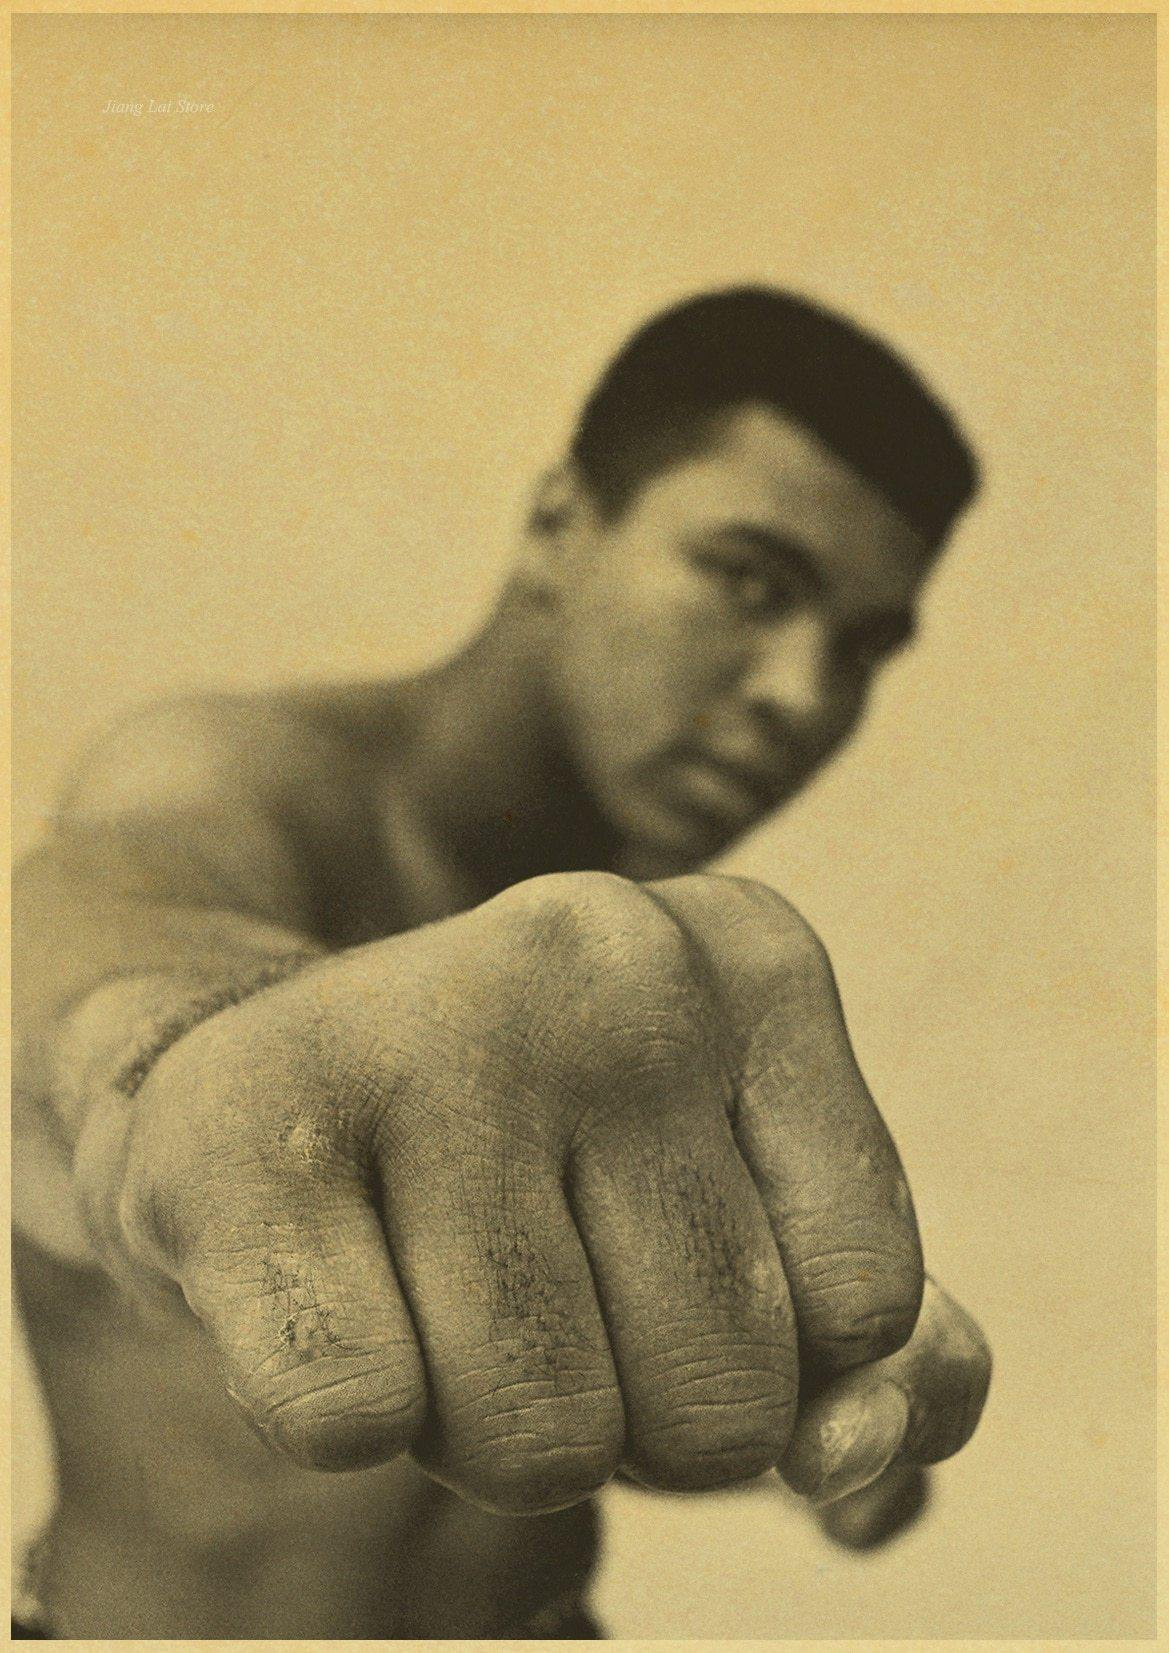 affiche mohamed ali <br>photo vintage poing du champion